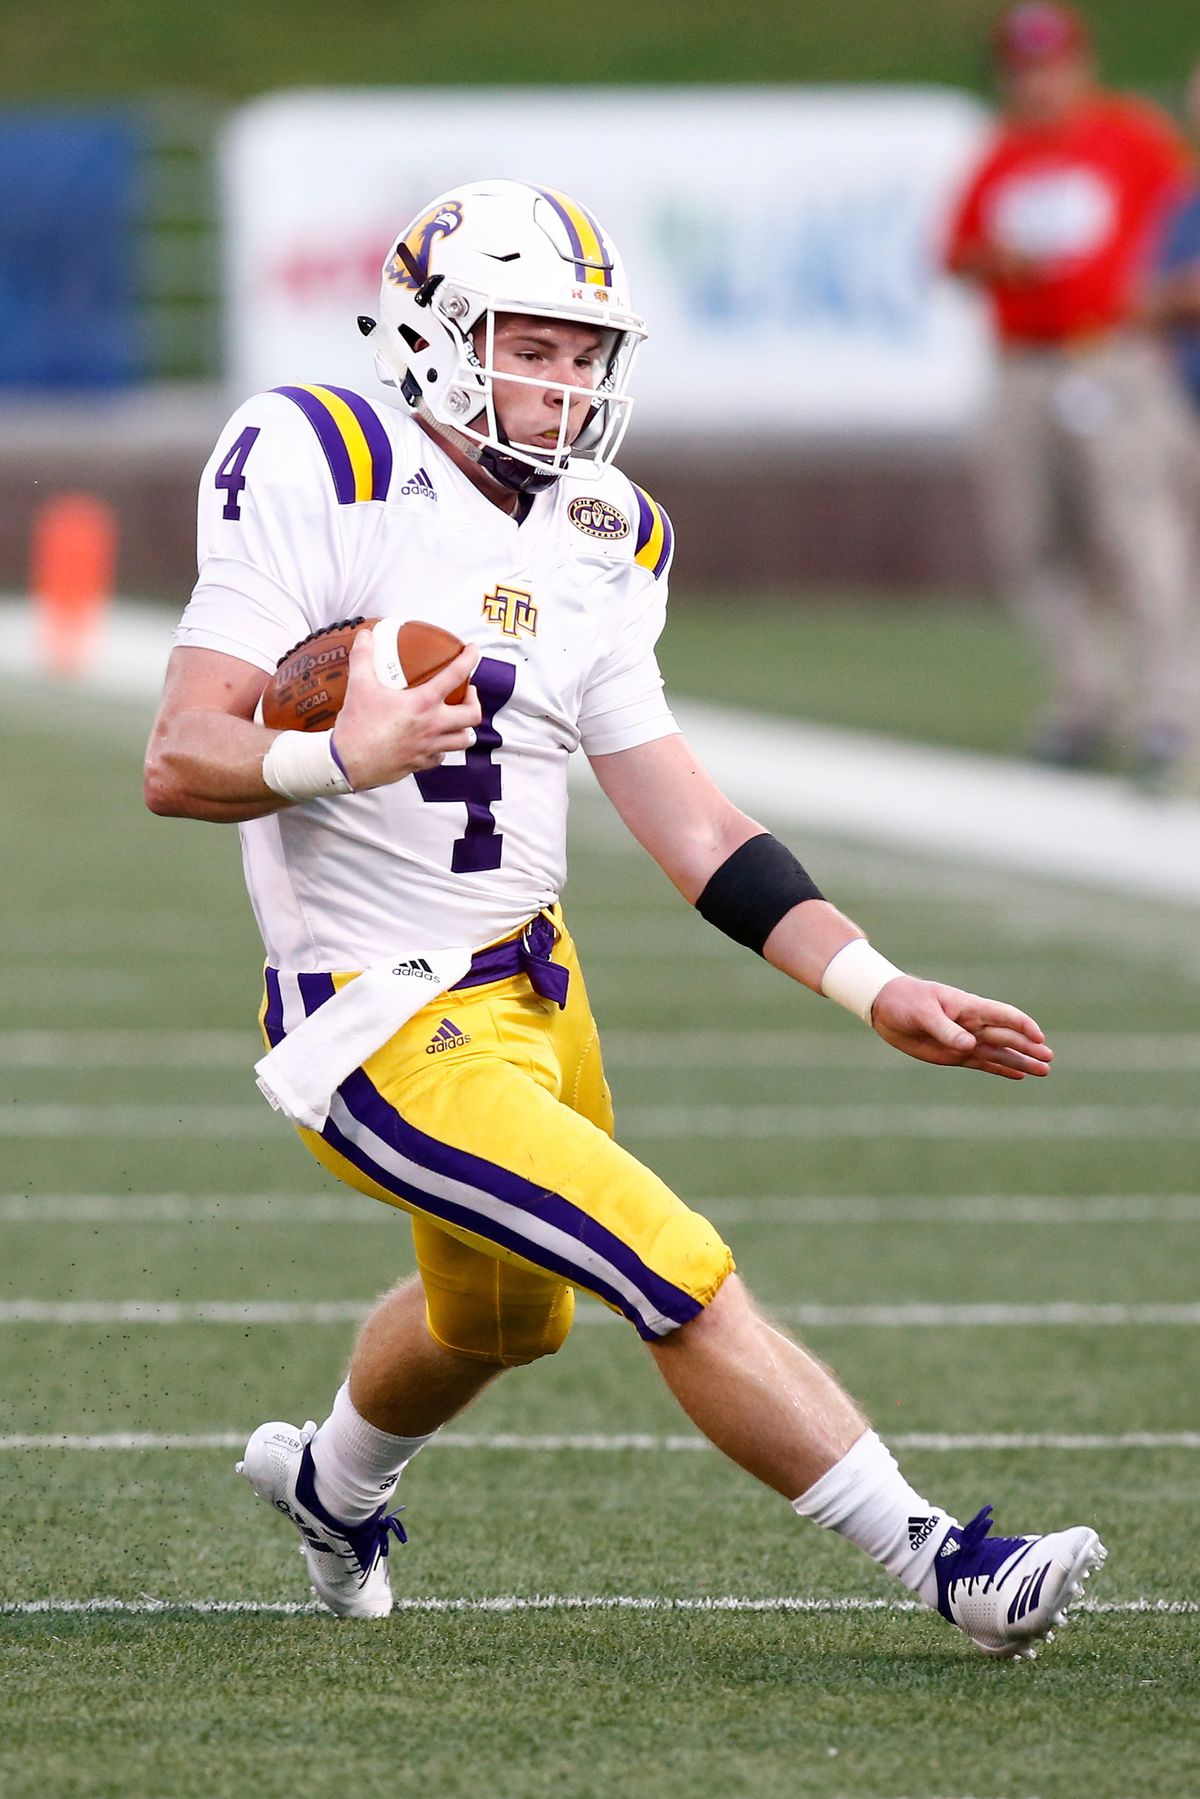 COLLEGE FOOTBALL: AUG 30 Tennessee Tech at Chattanooga